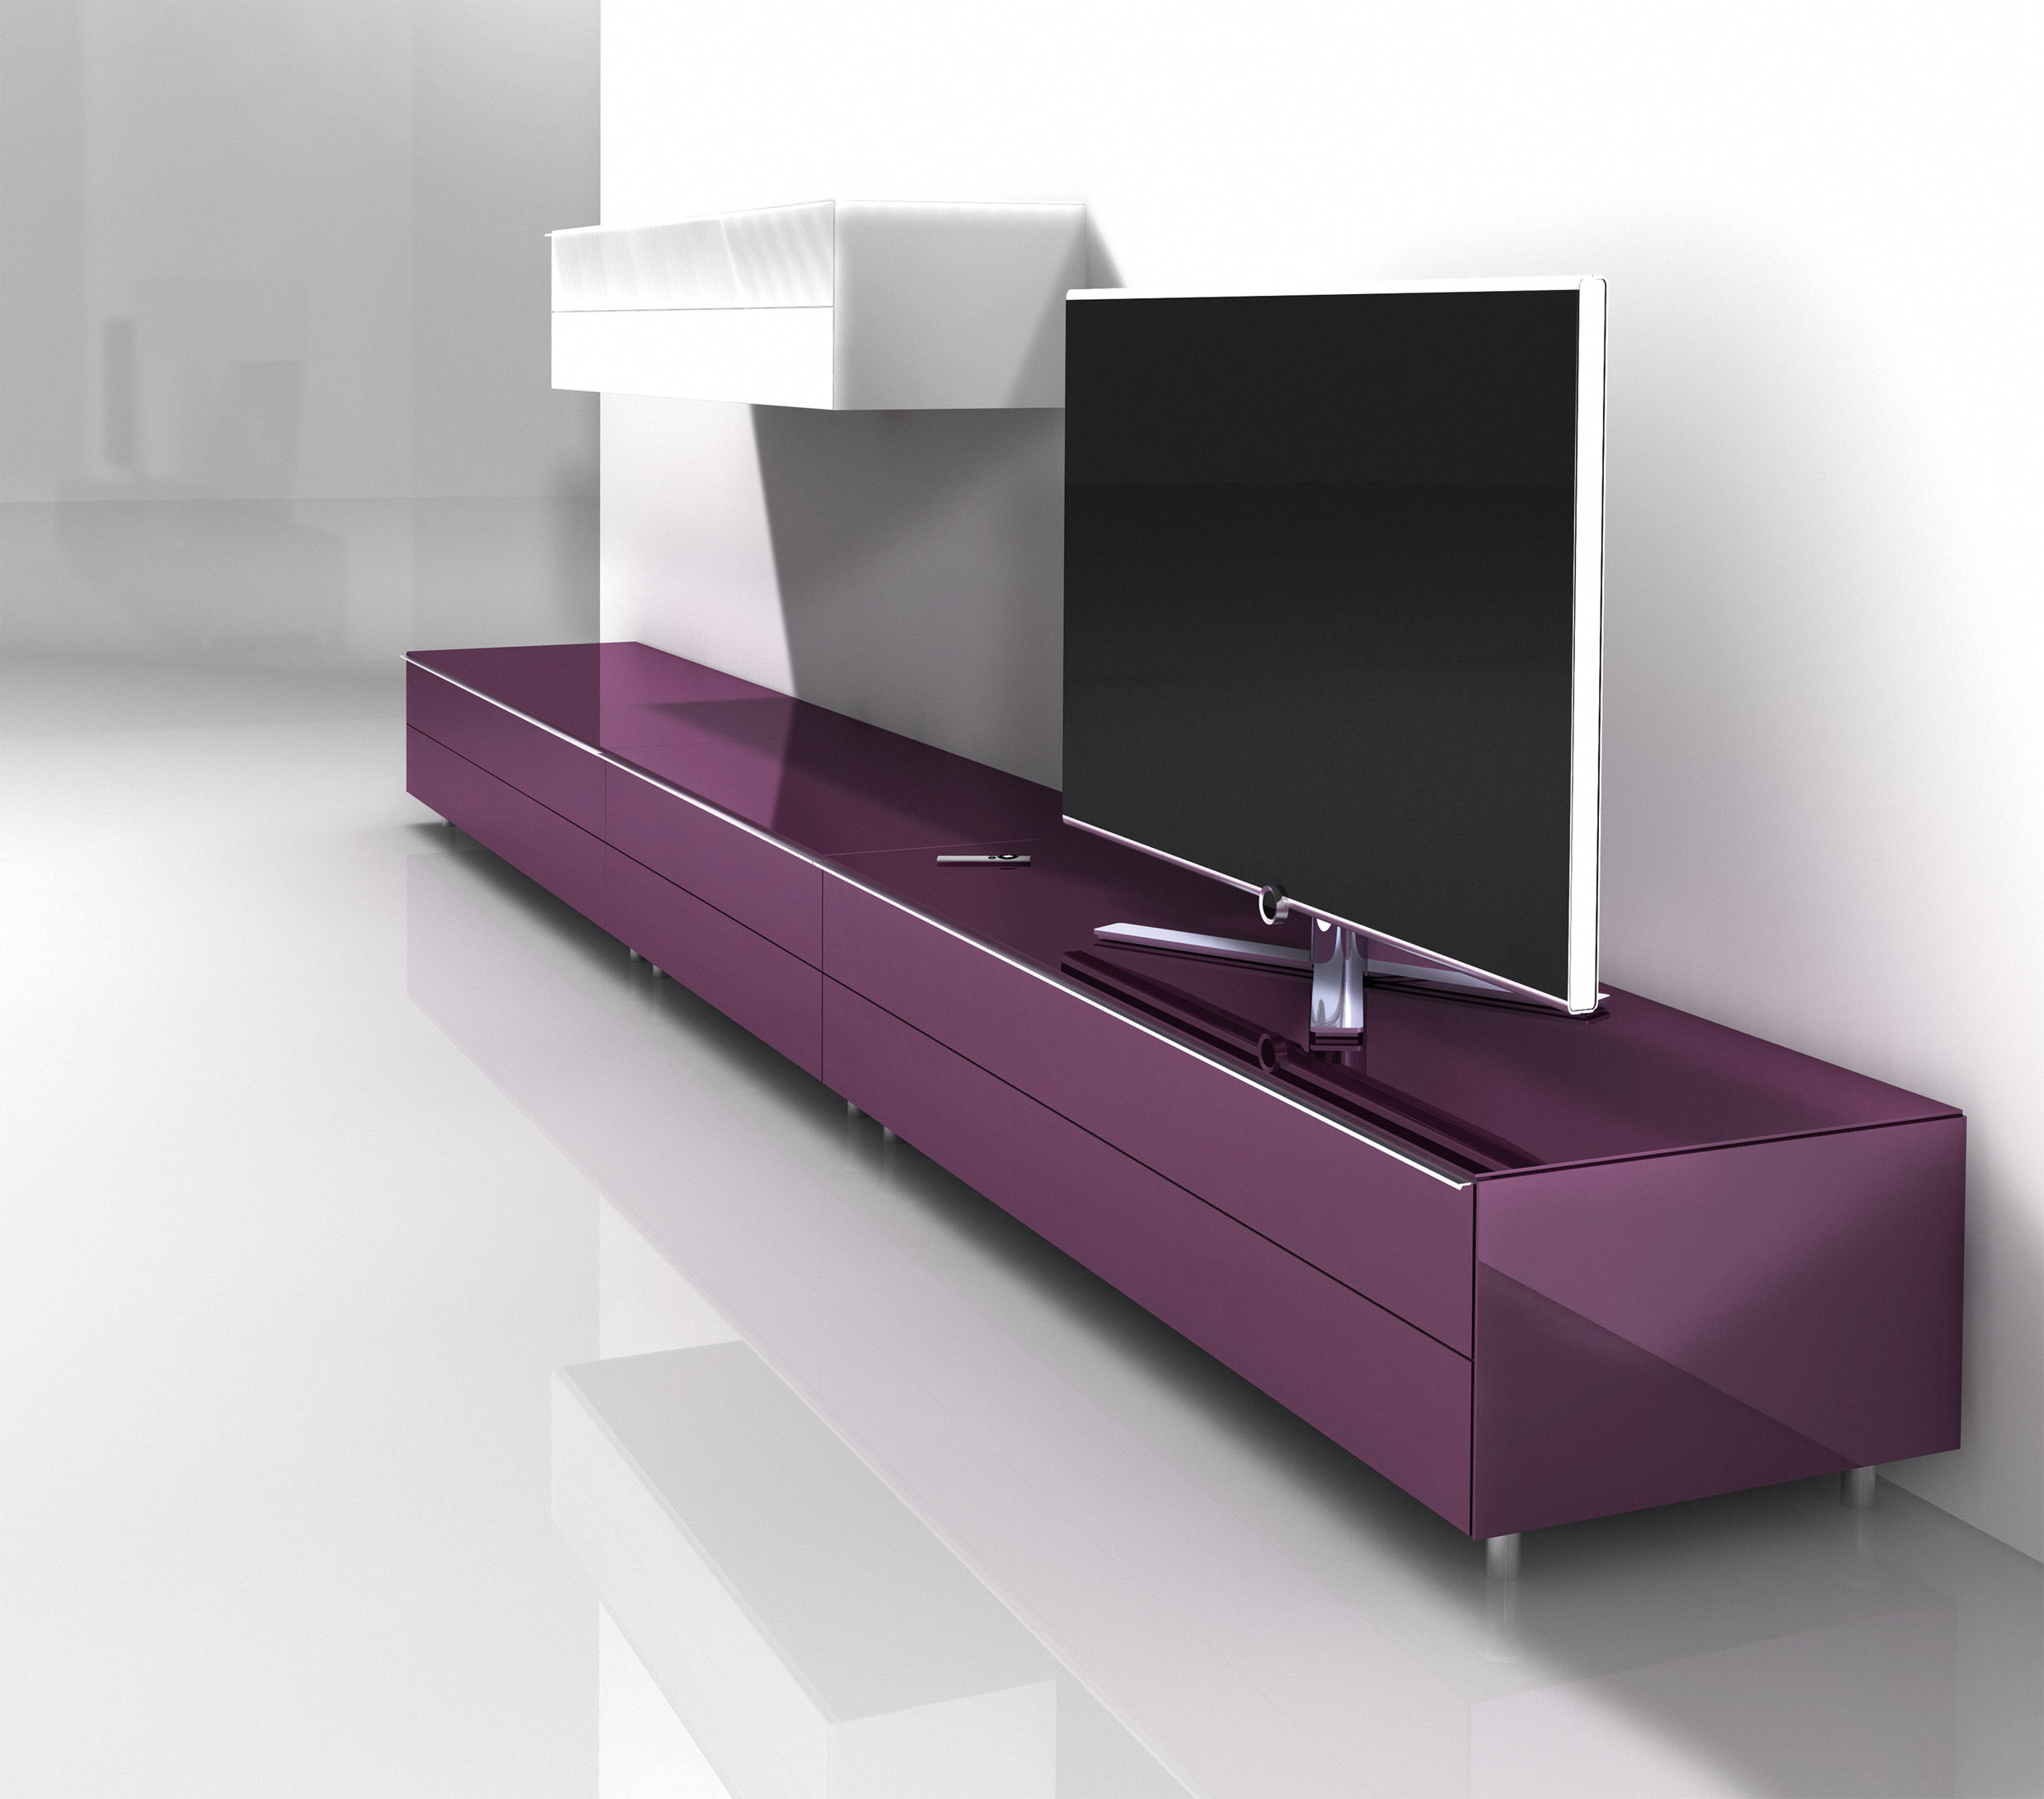 attraktive alternativen zum kabelsalat presseservice region stuttgart. Black Bedroom Furniture Sets. Home Design Ideas